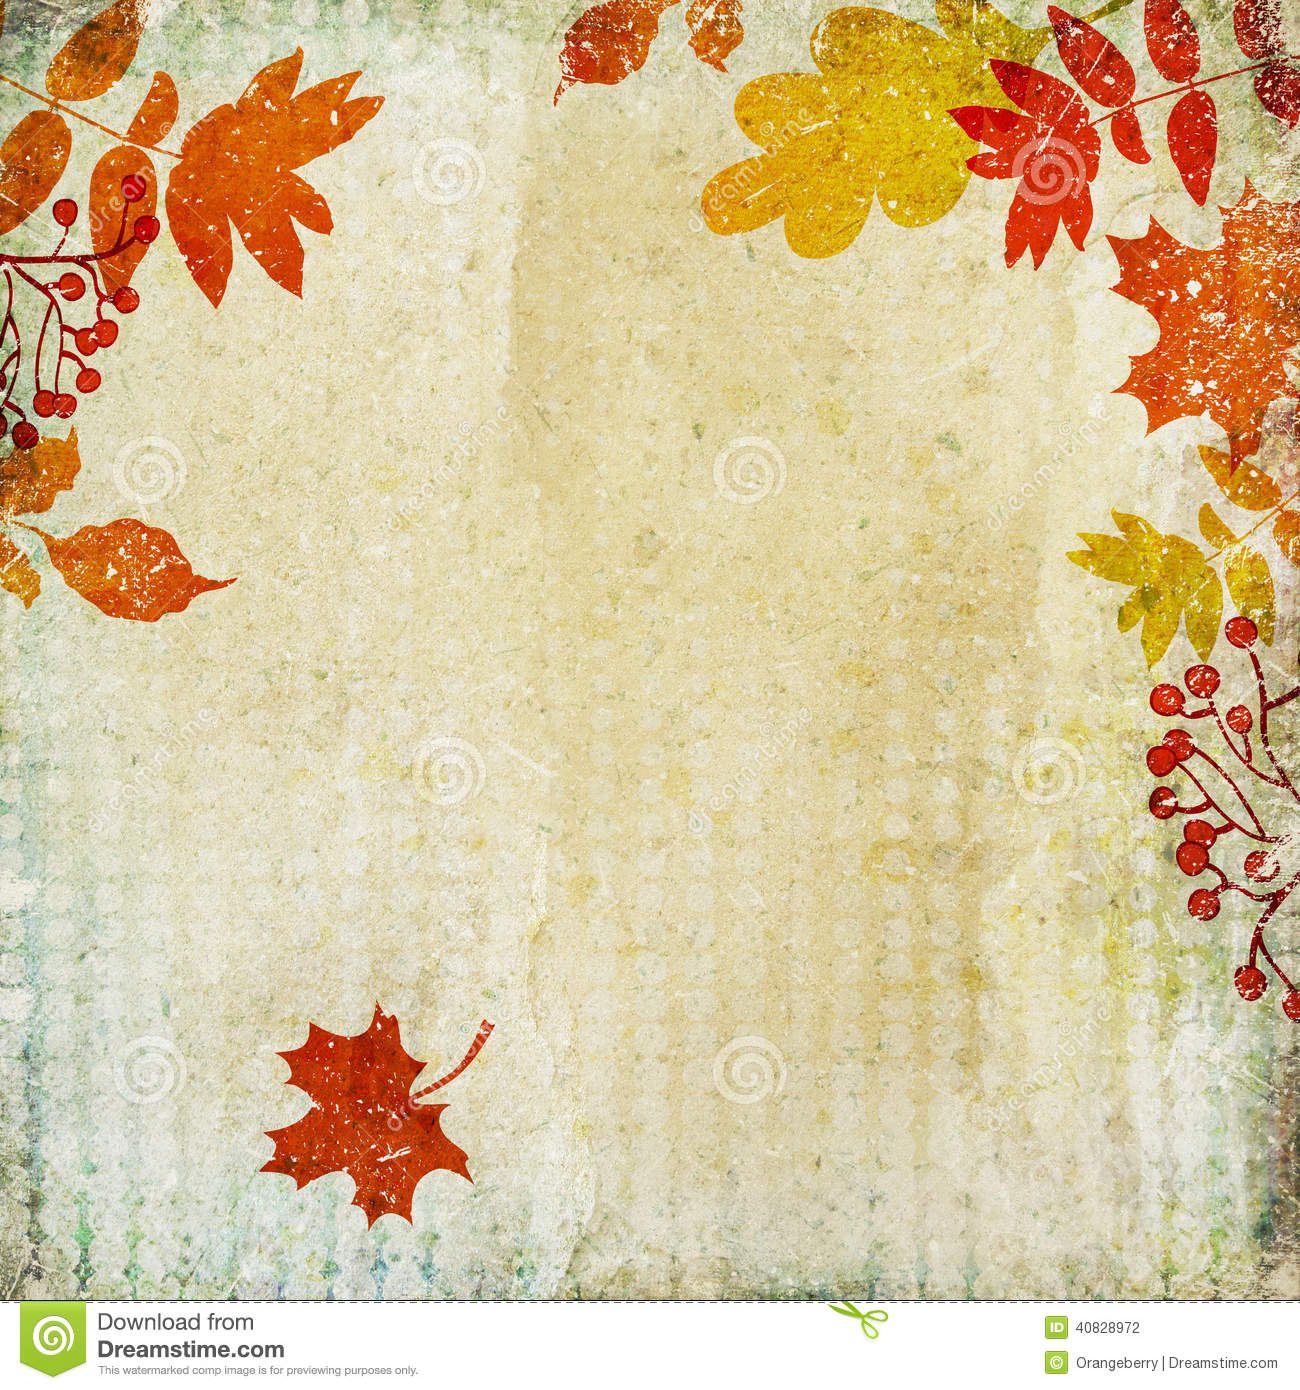 vintage fall backgrounds with - photo #35